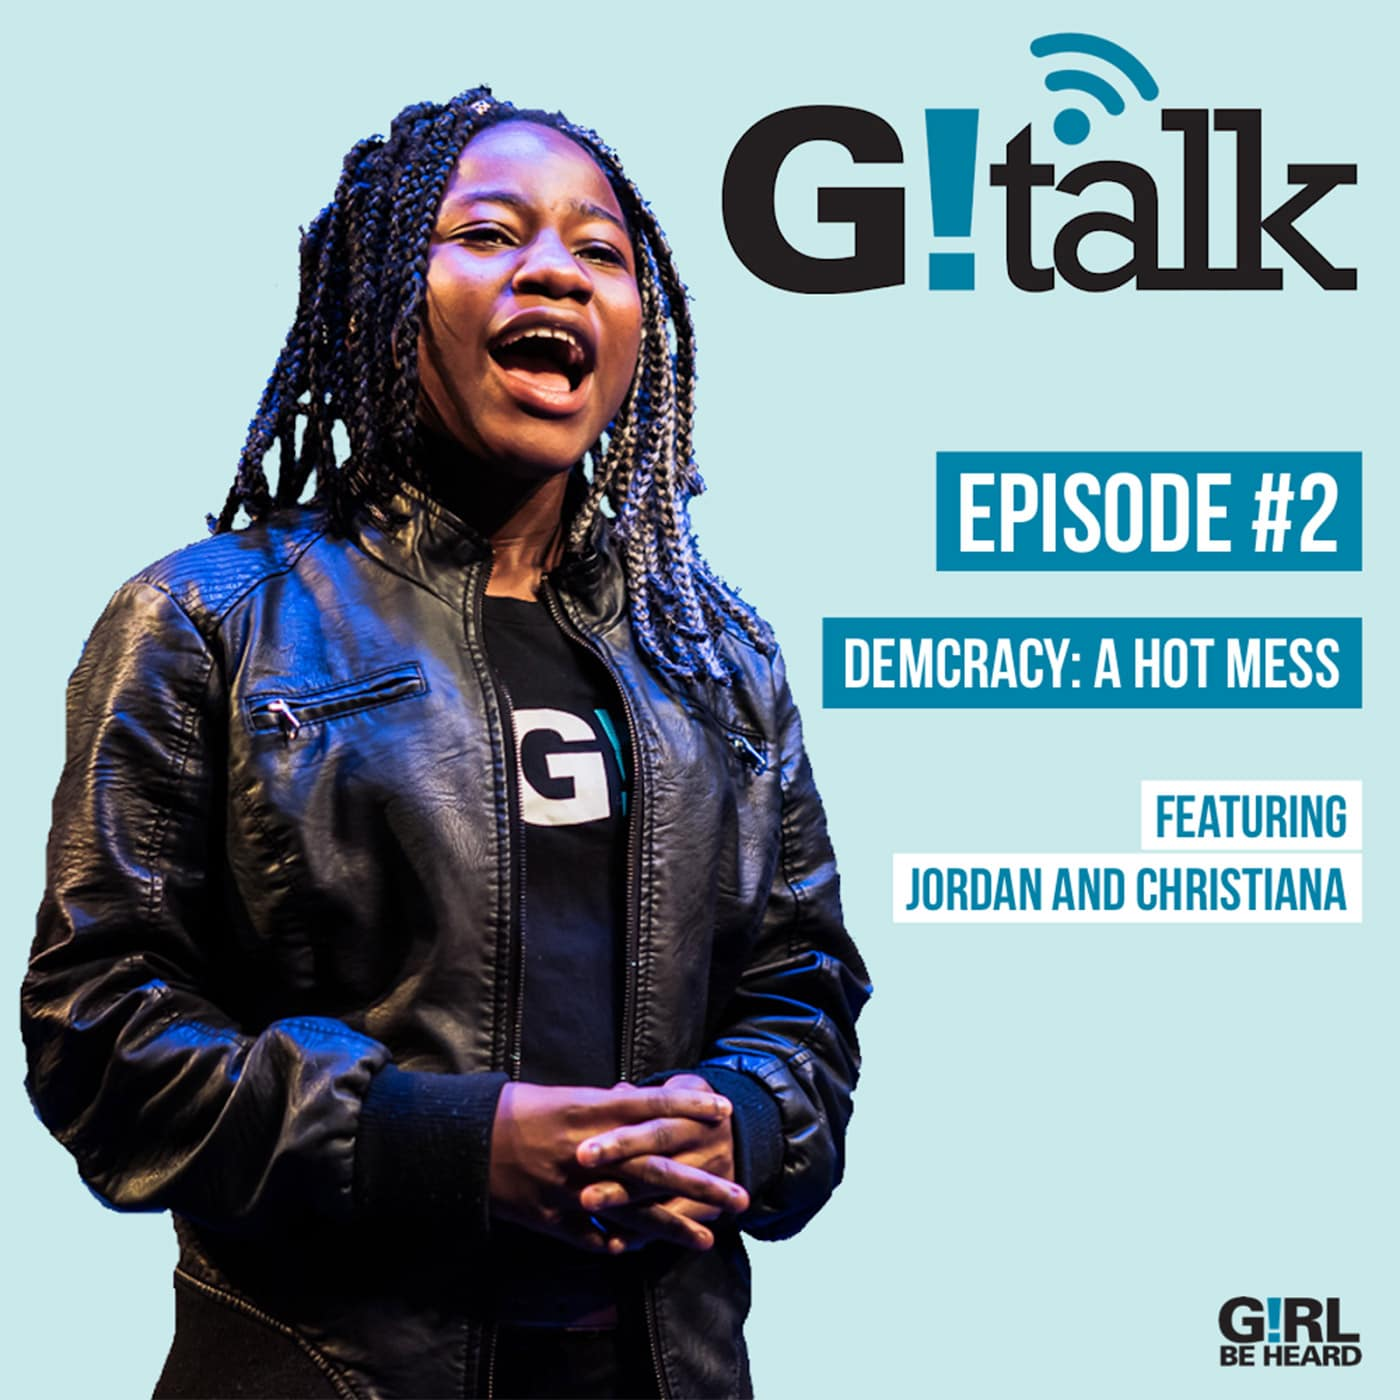 GIRL BE HEARD G!TALK Episode 2 Democracy: A Hot Mess